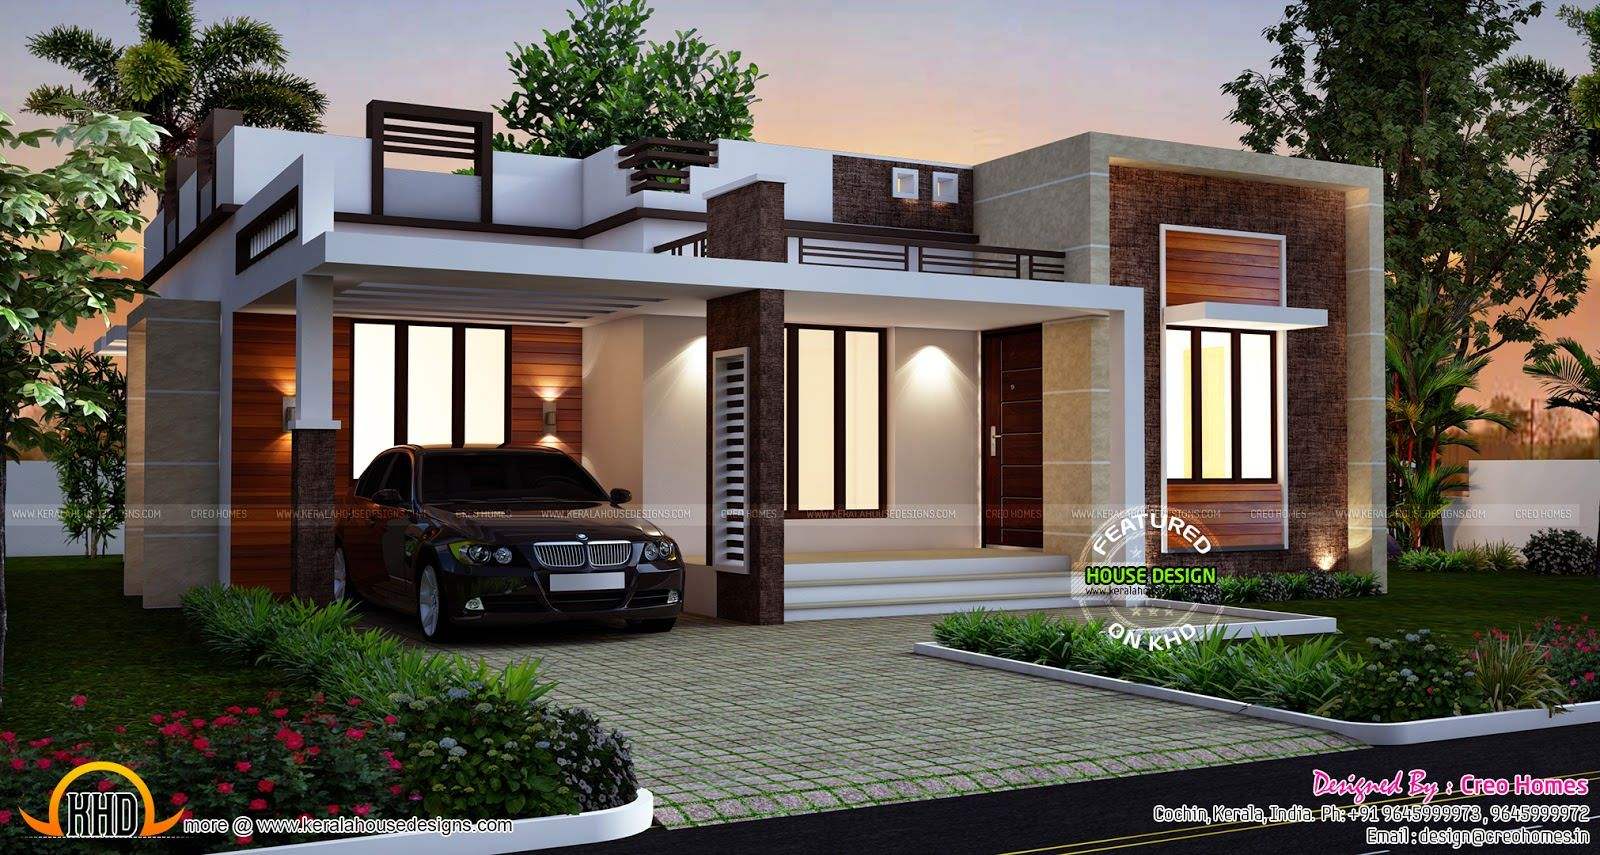 Single Story Flat Roof House Plans Jpg 1600 855 Kerala House Design House Roof Design Flat Roof House